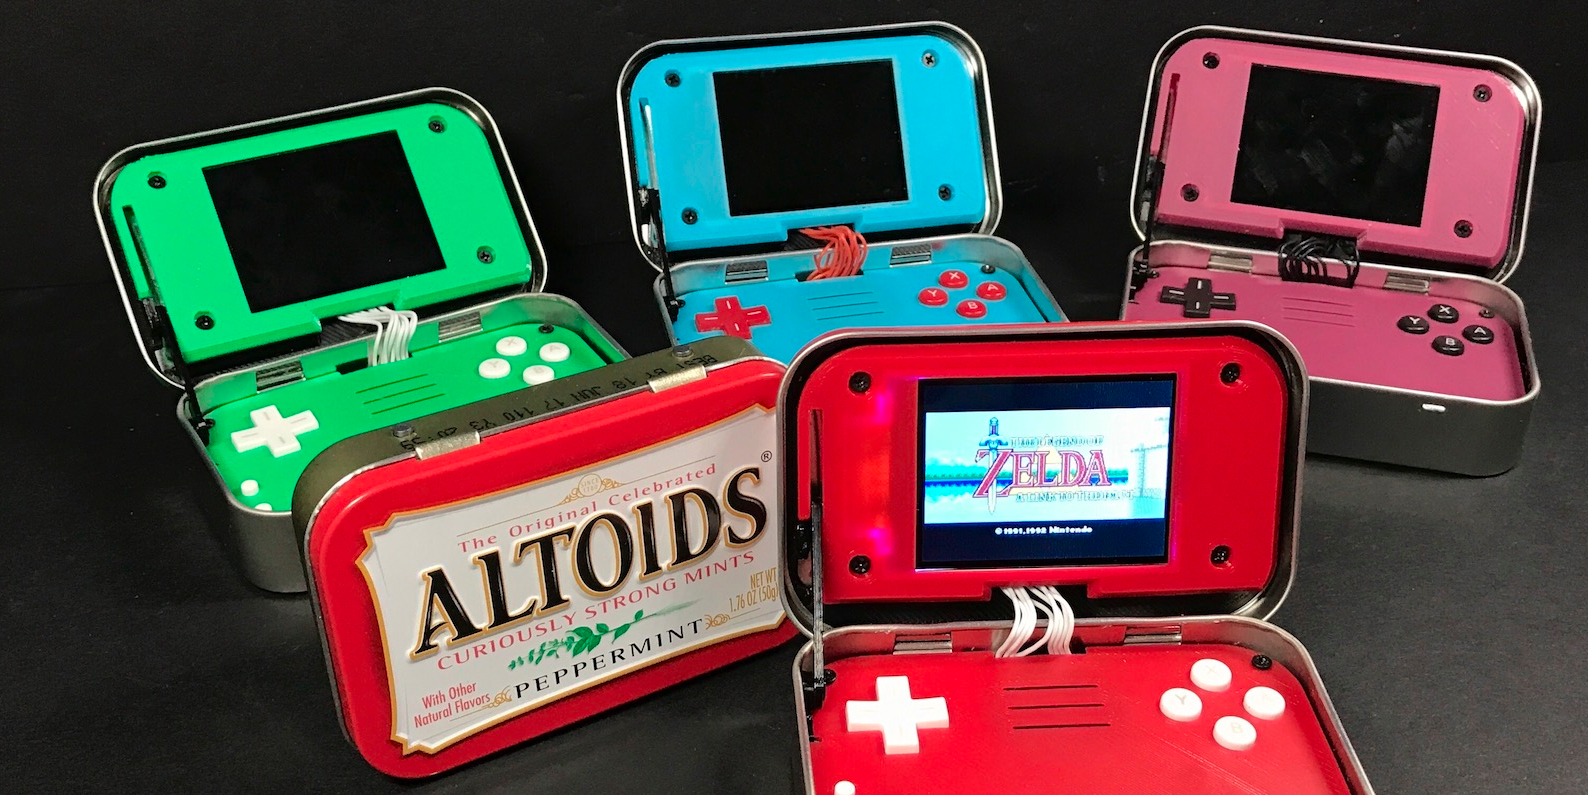 This tiny mint box is actually a gaming console packing a Raspberry Pi